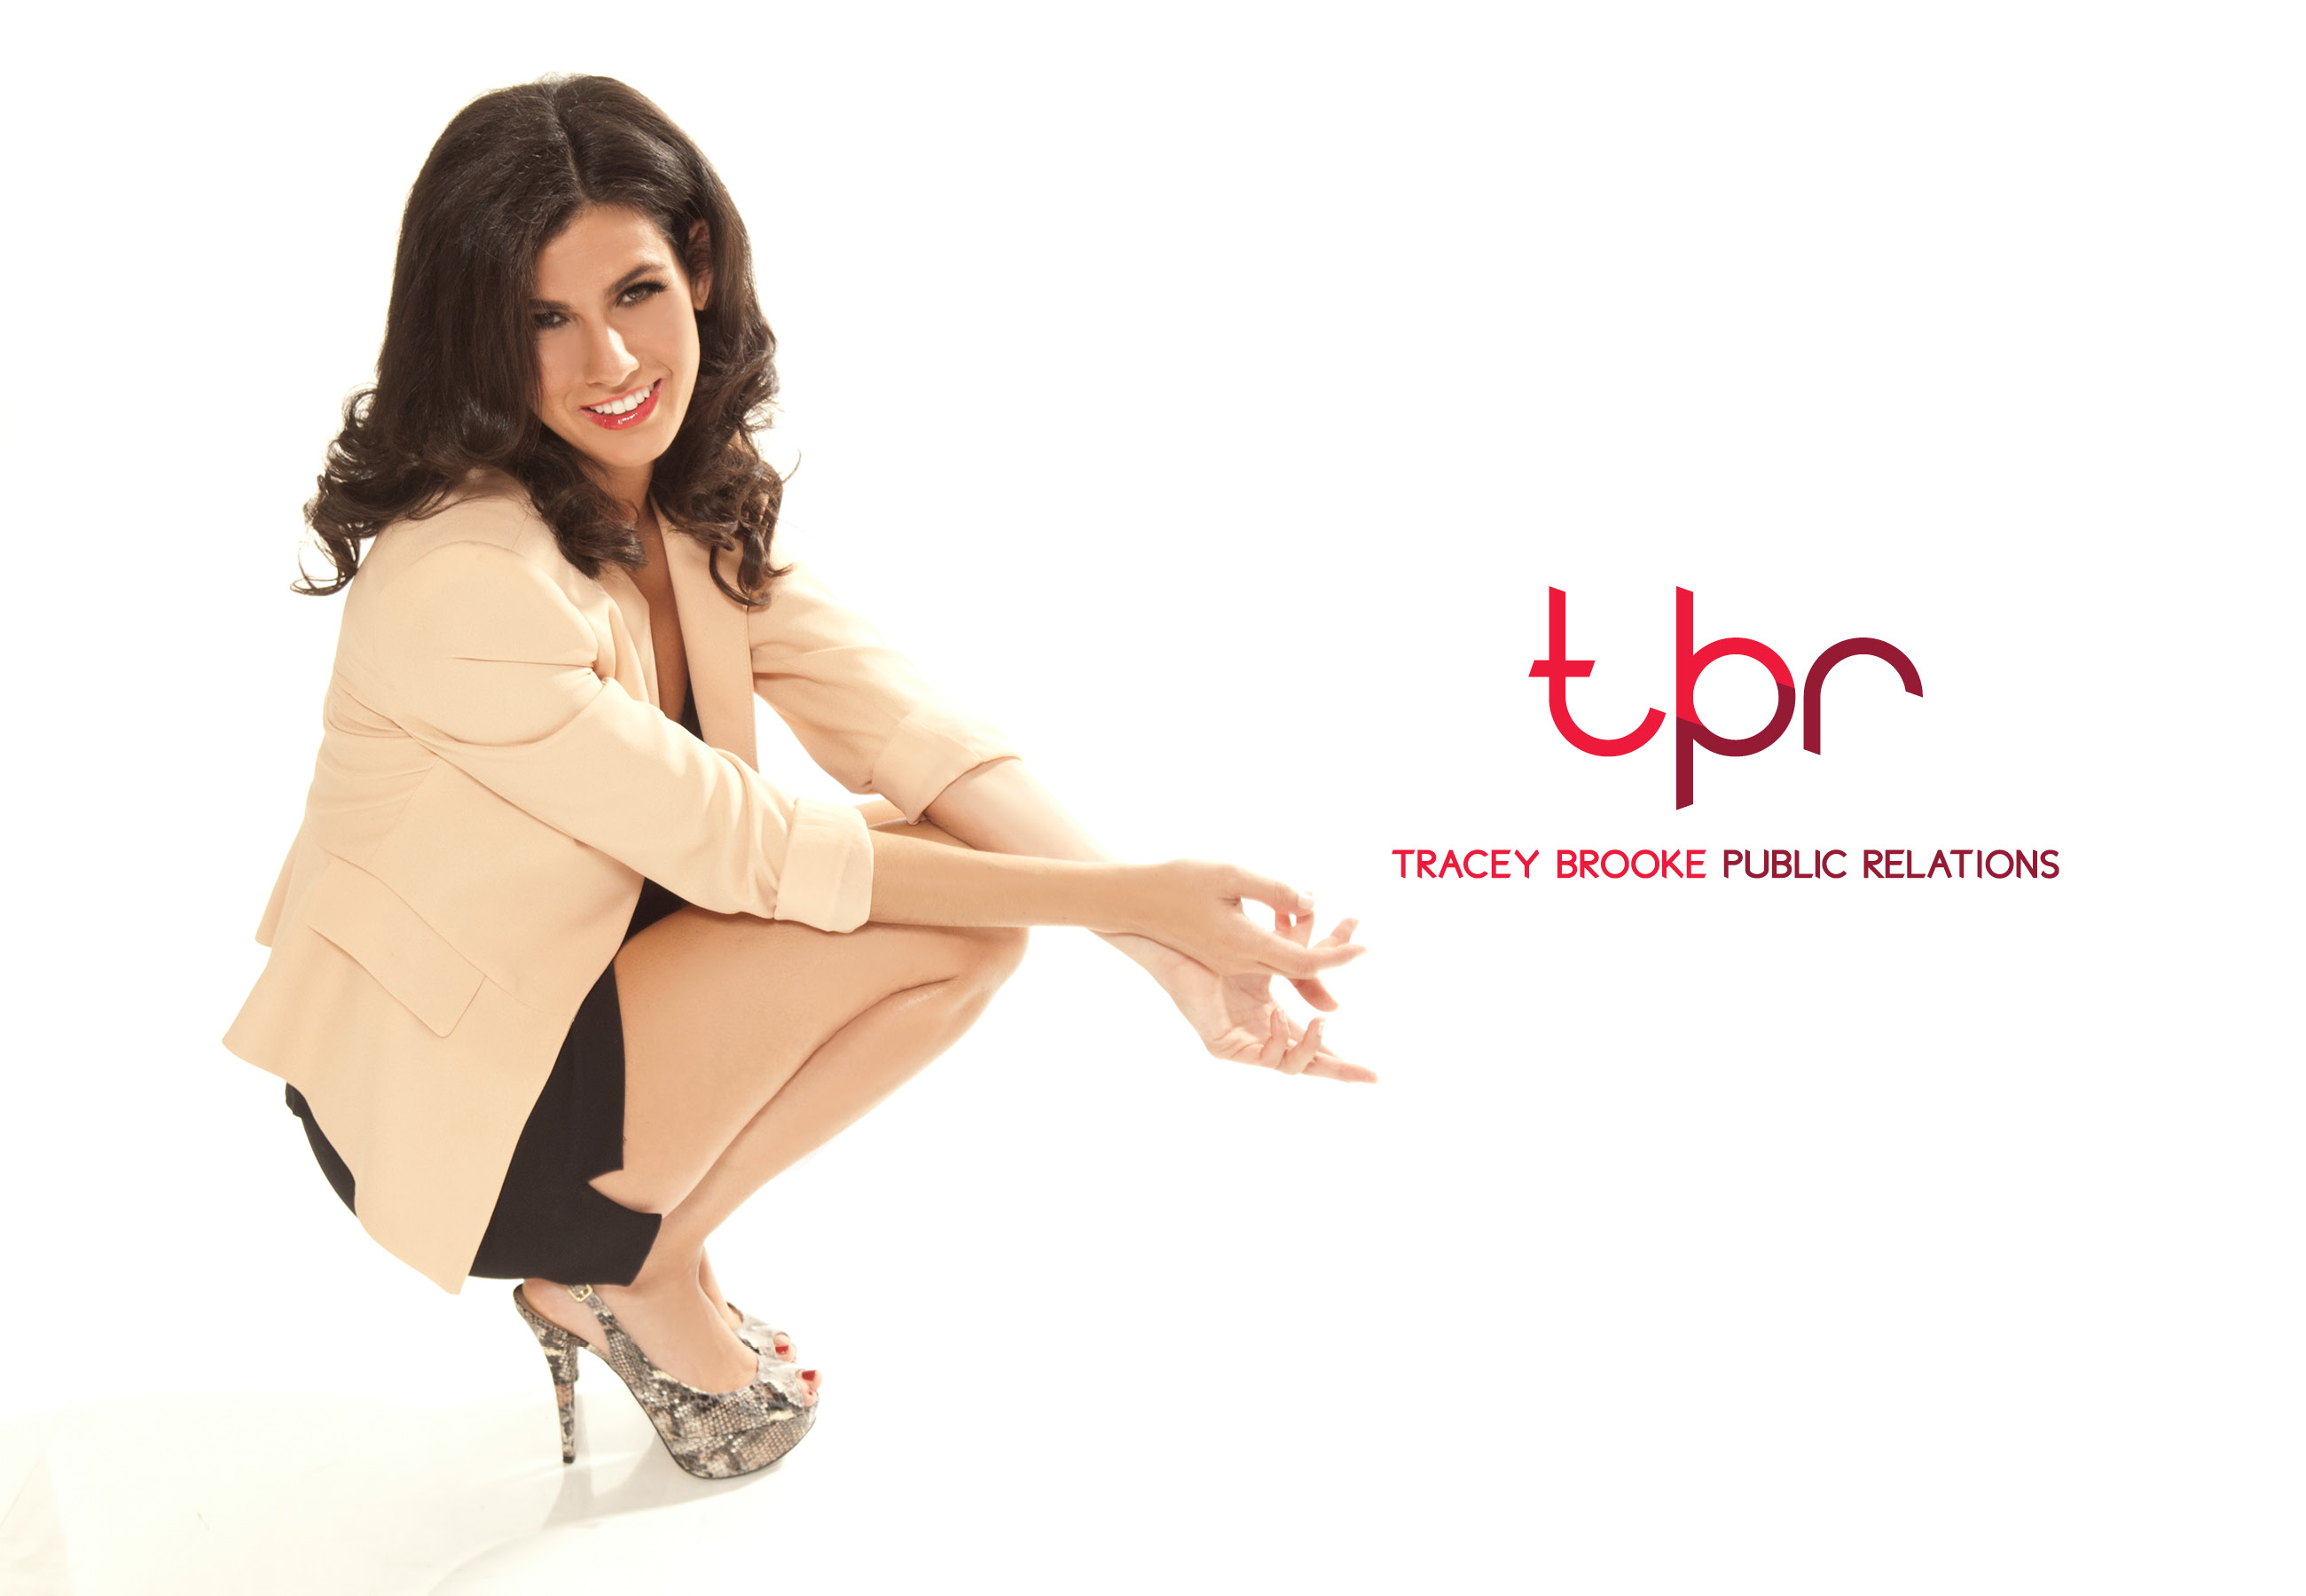 TRACEY BROOKE PUBLIC RELATIONS company